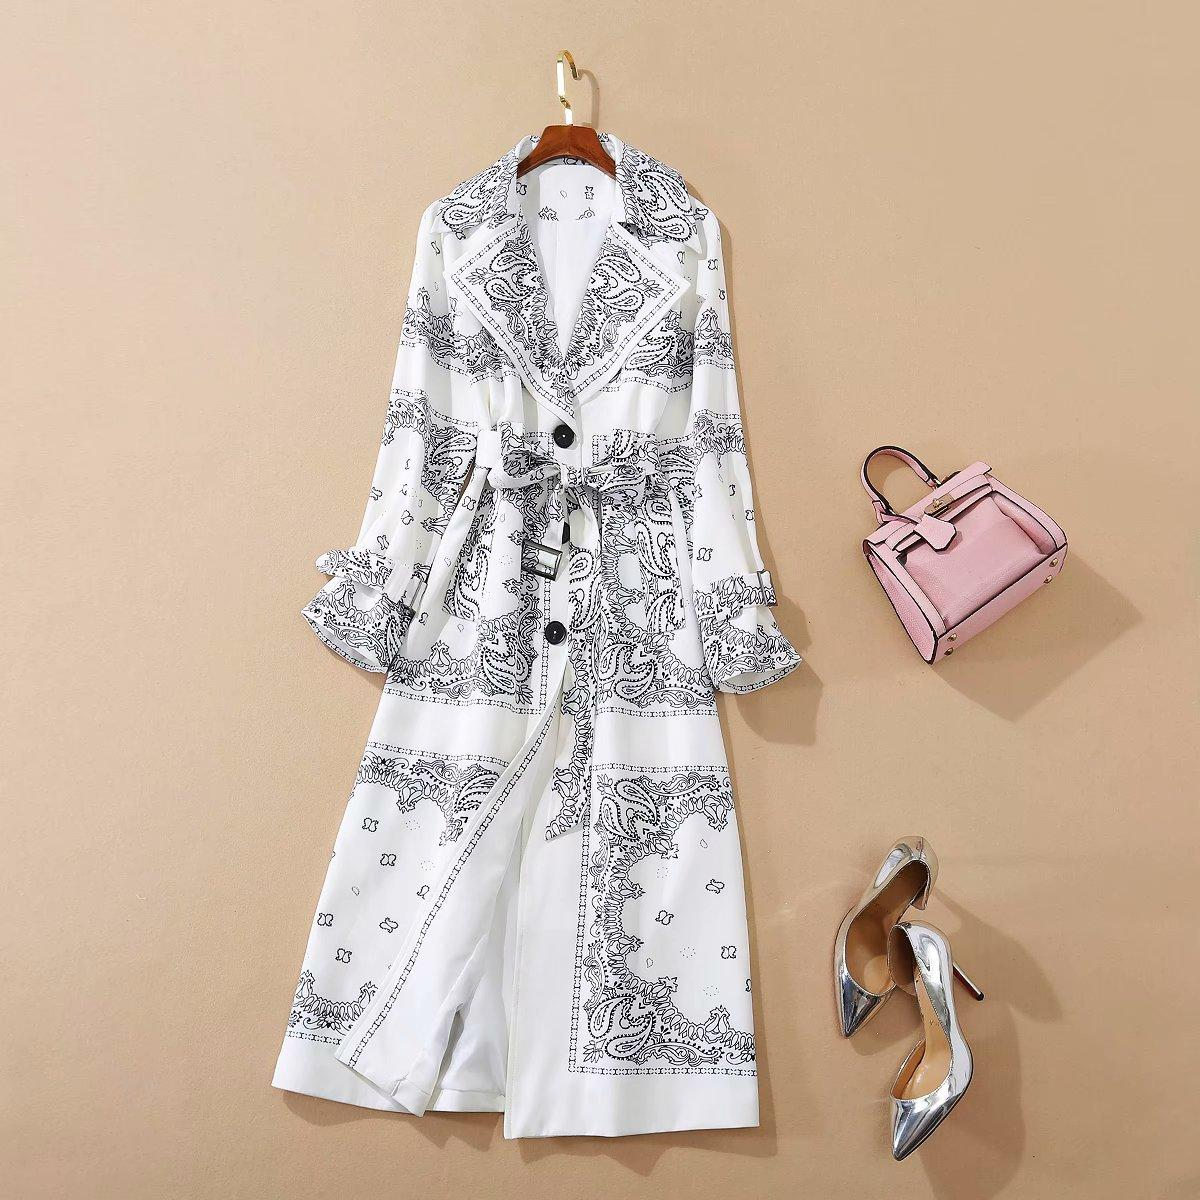 European and American women's clothing 2020 autumn new style Long-sleeved suit collar with fashionable print lace-up Trench coat